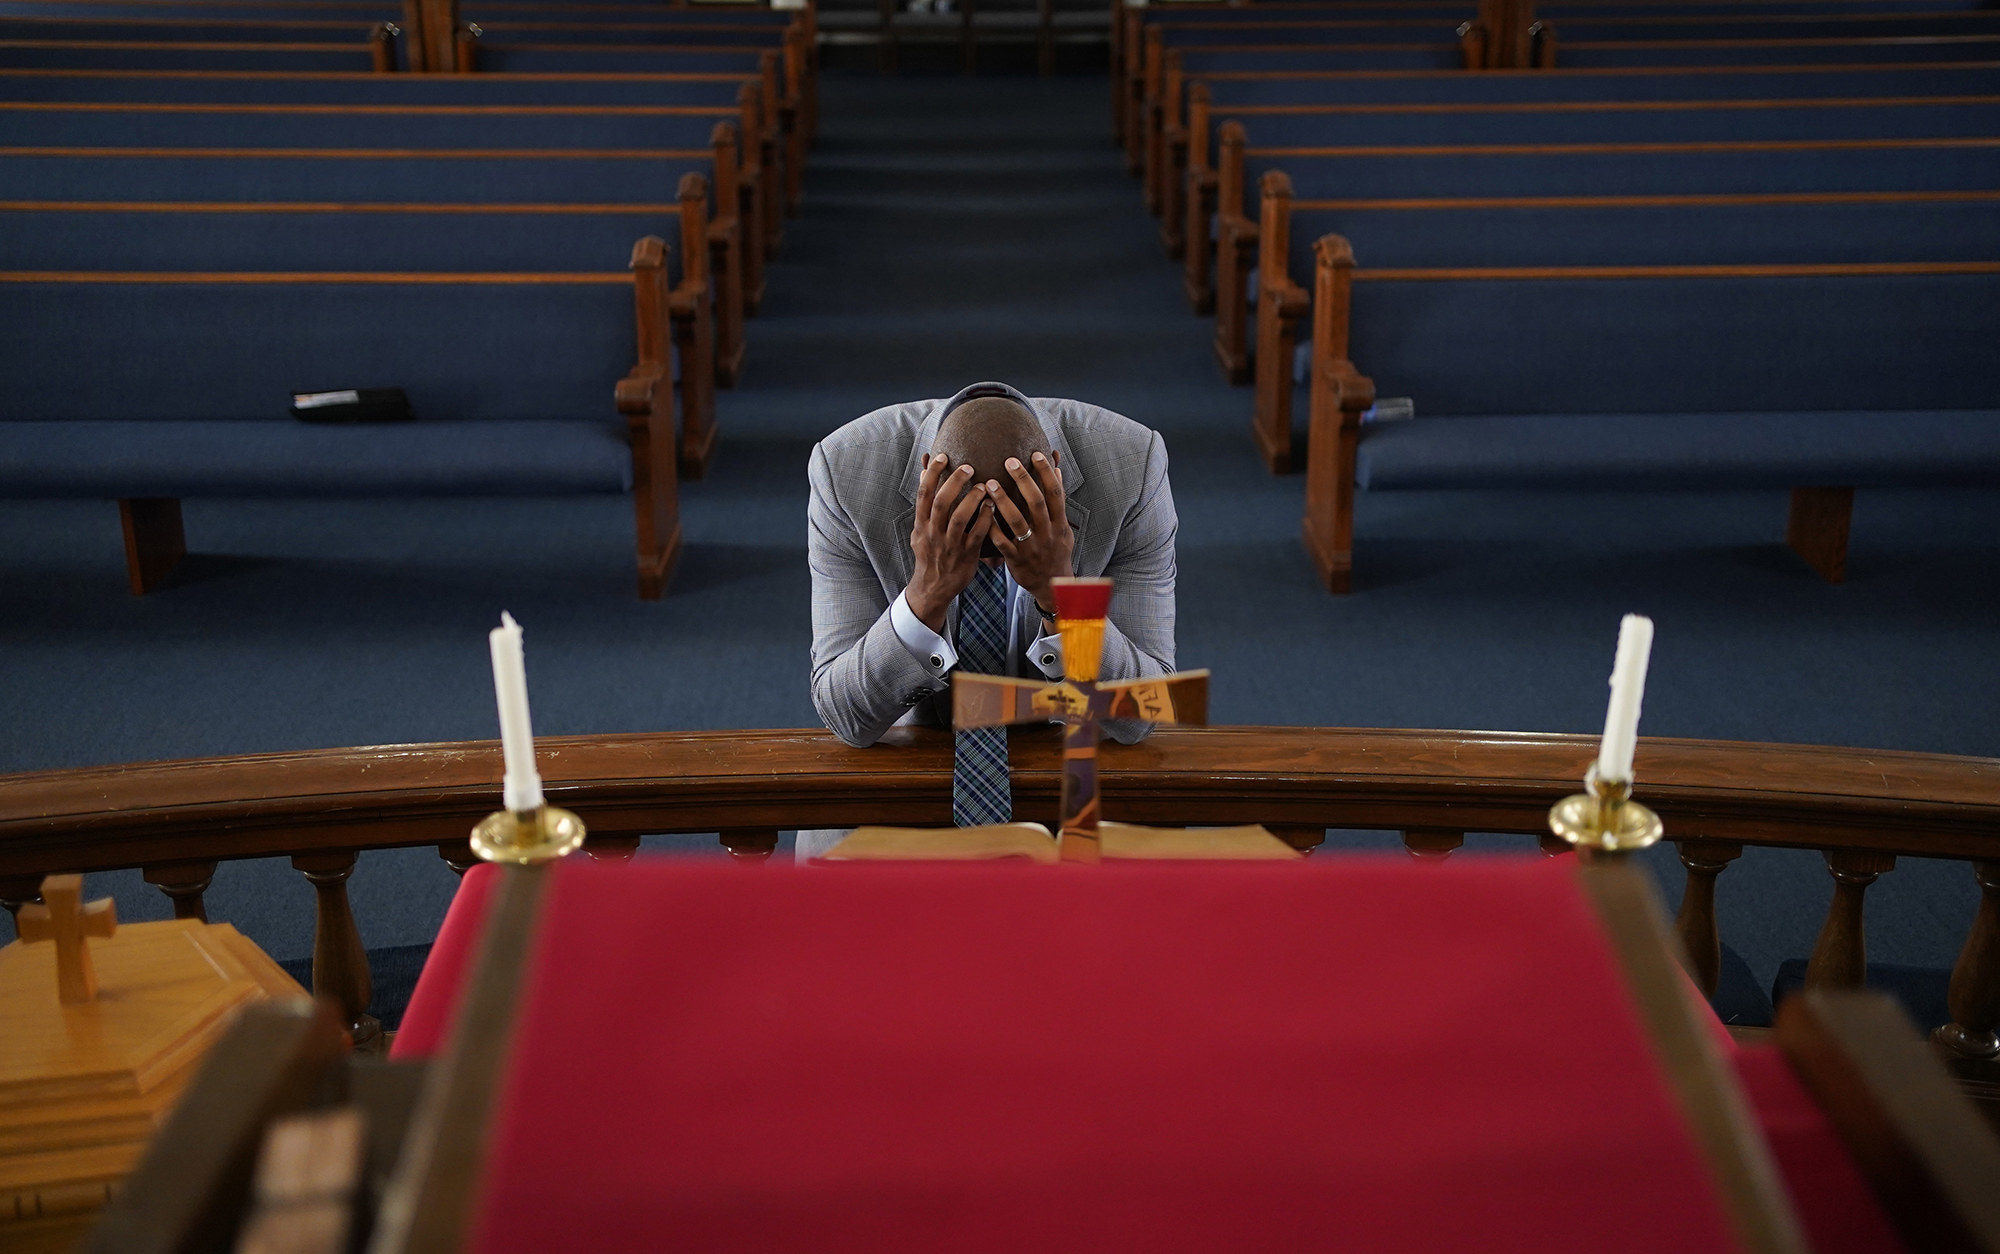 A man prays at an altar with his head in his hands